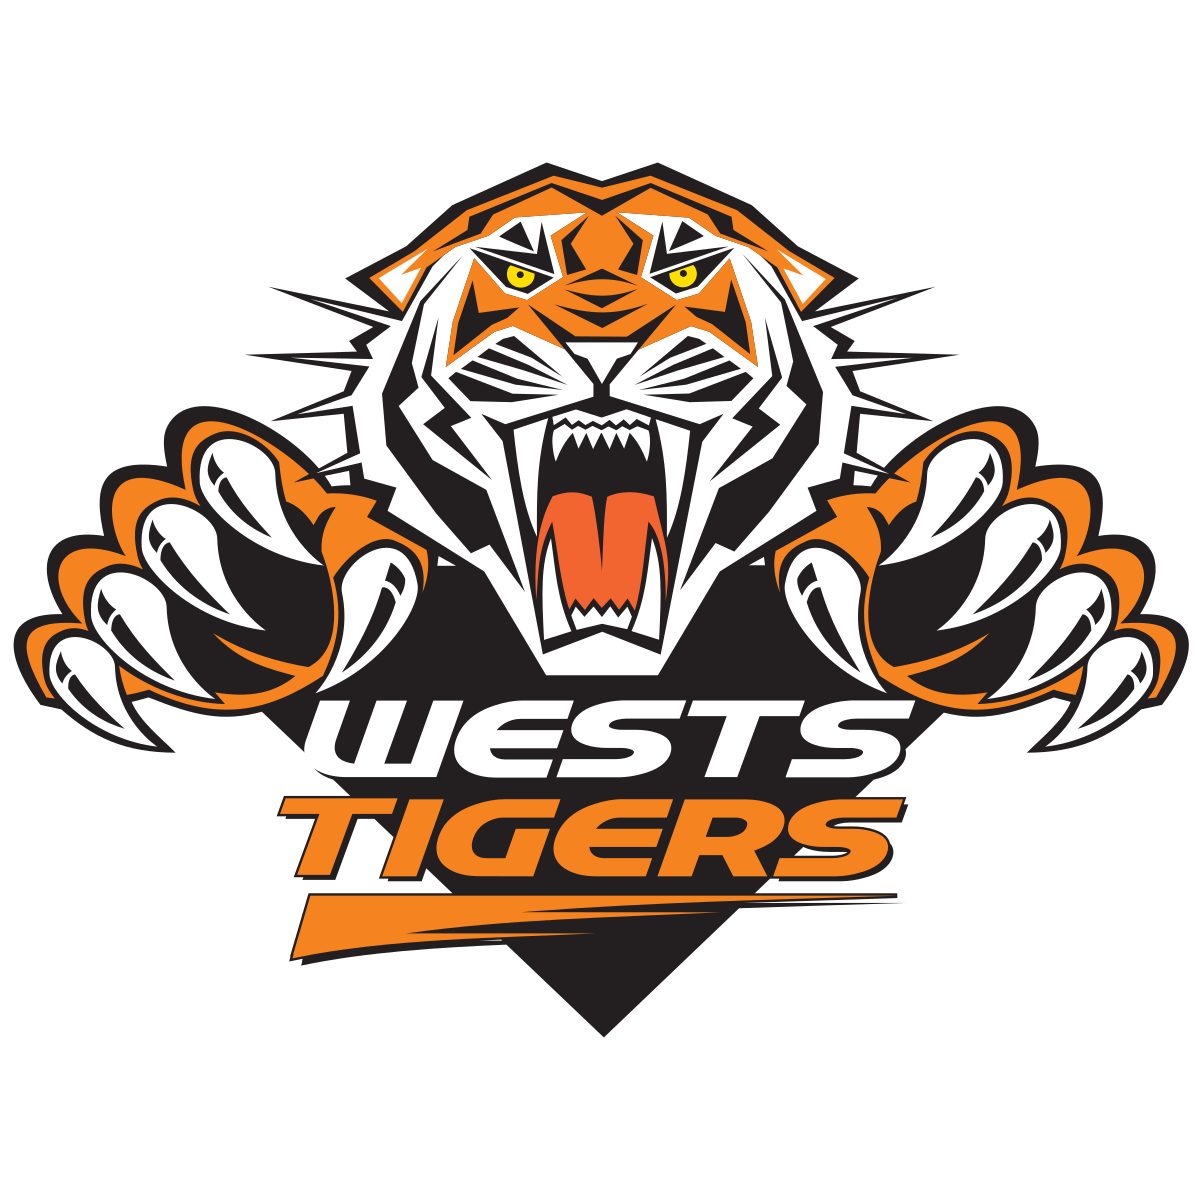 Places Wests Tigers